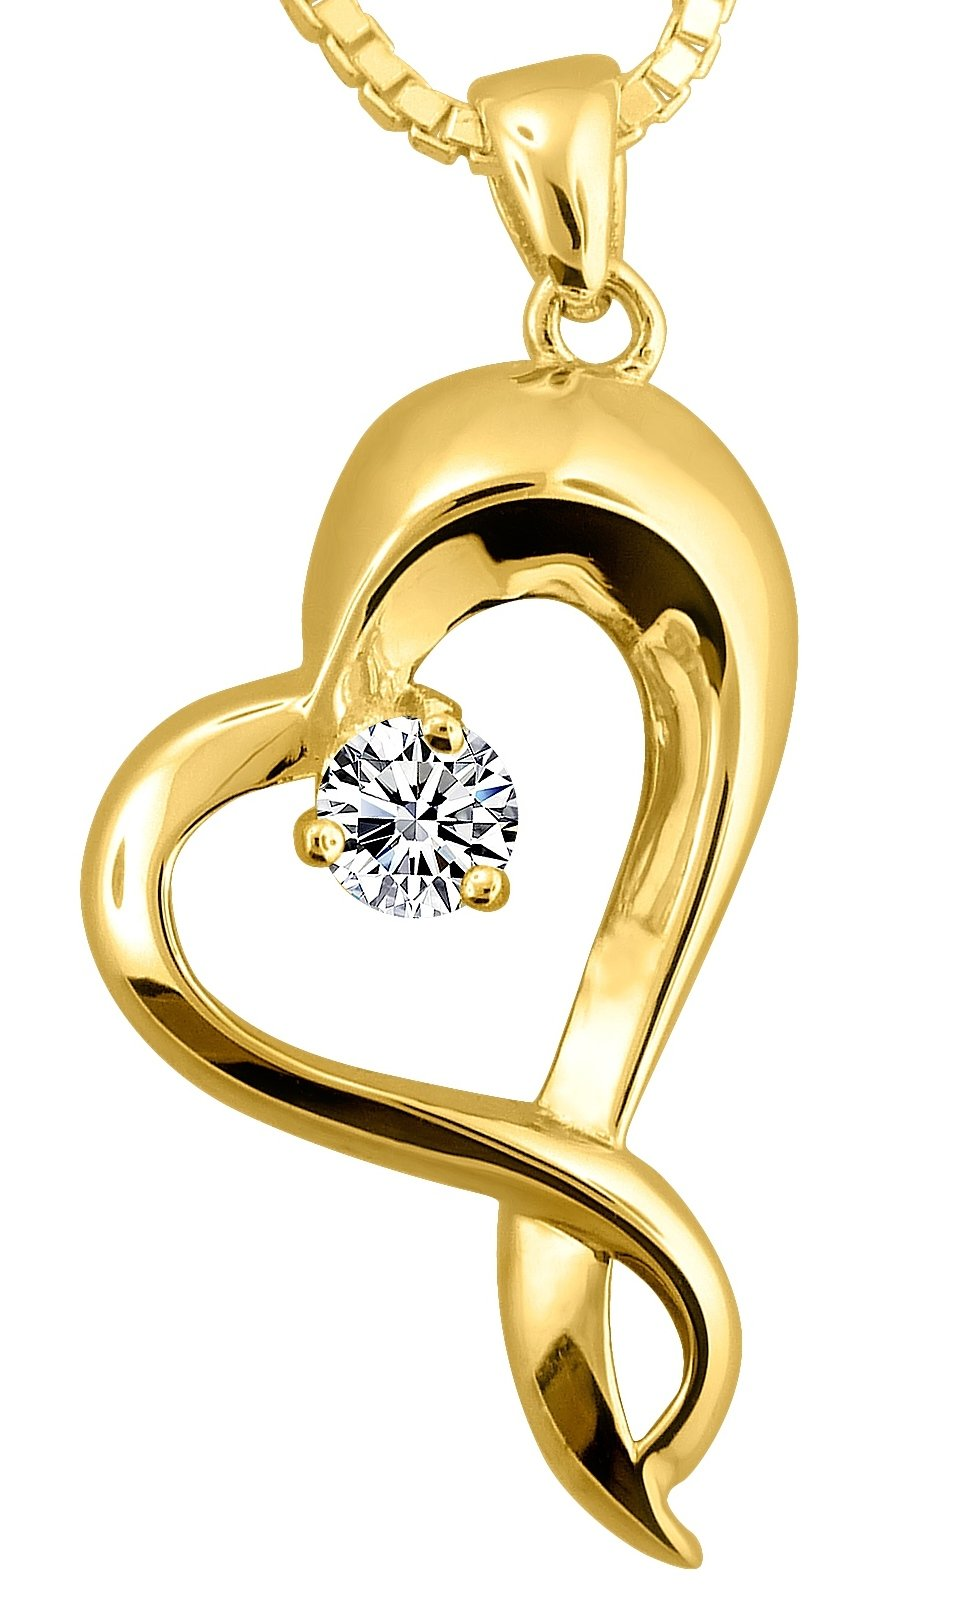 18k Gold Plate on Sterling Silver Embracing Heart Urn Pendant With 18k Gold Plated Chain, 18 Inch